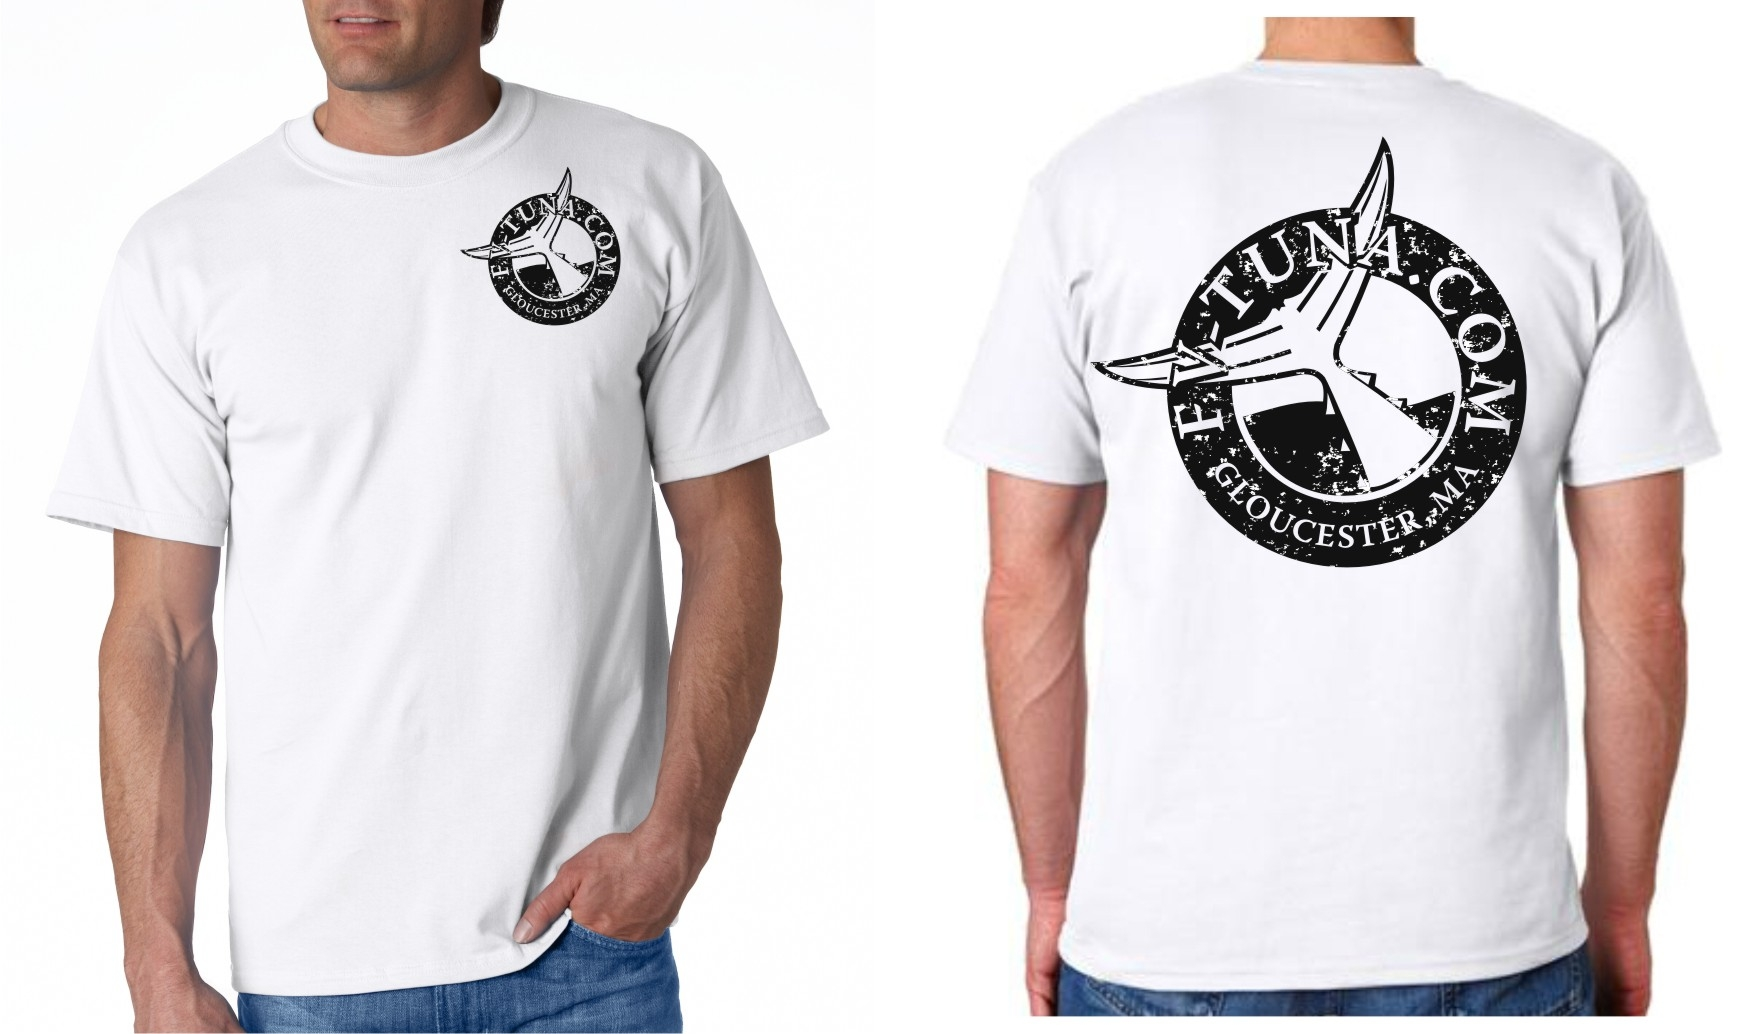 Wicked tuna shirts t shirt design database for The travels of at shirt in the global economy pdf